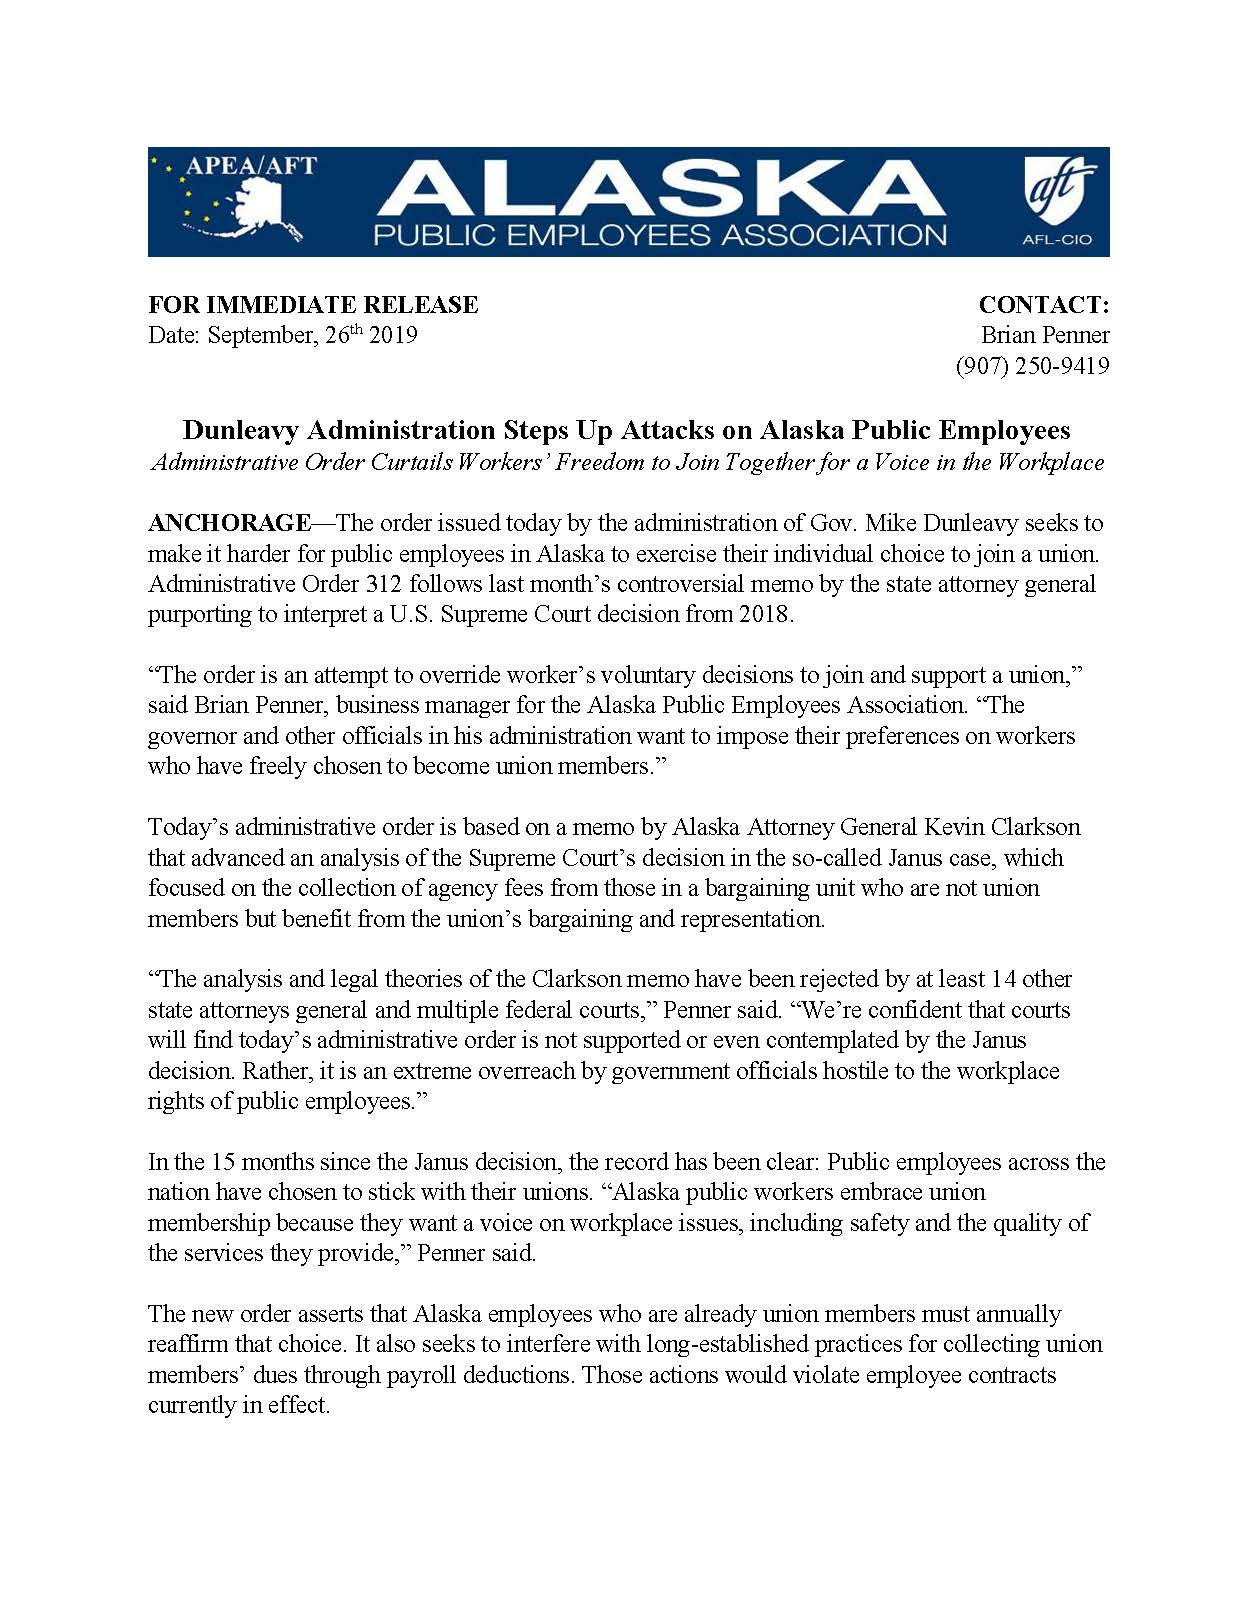 APEA Release on Order Attacking State Employee Rights 9.26.19_Page_1.jpg